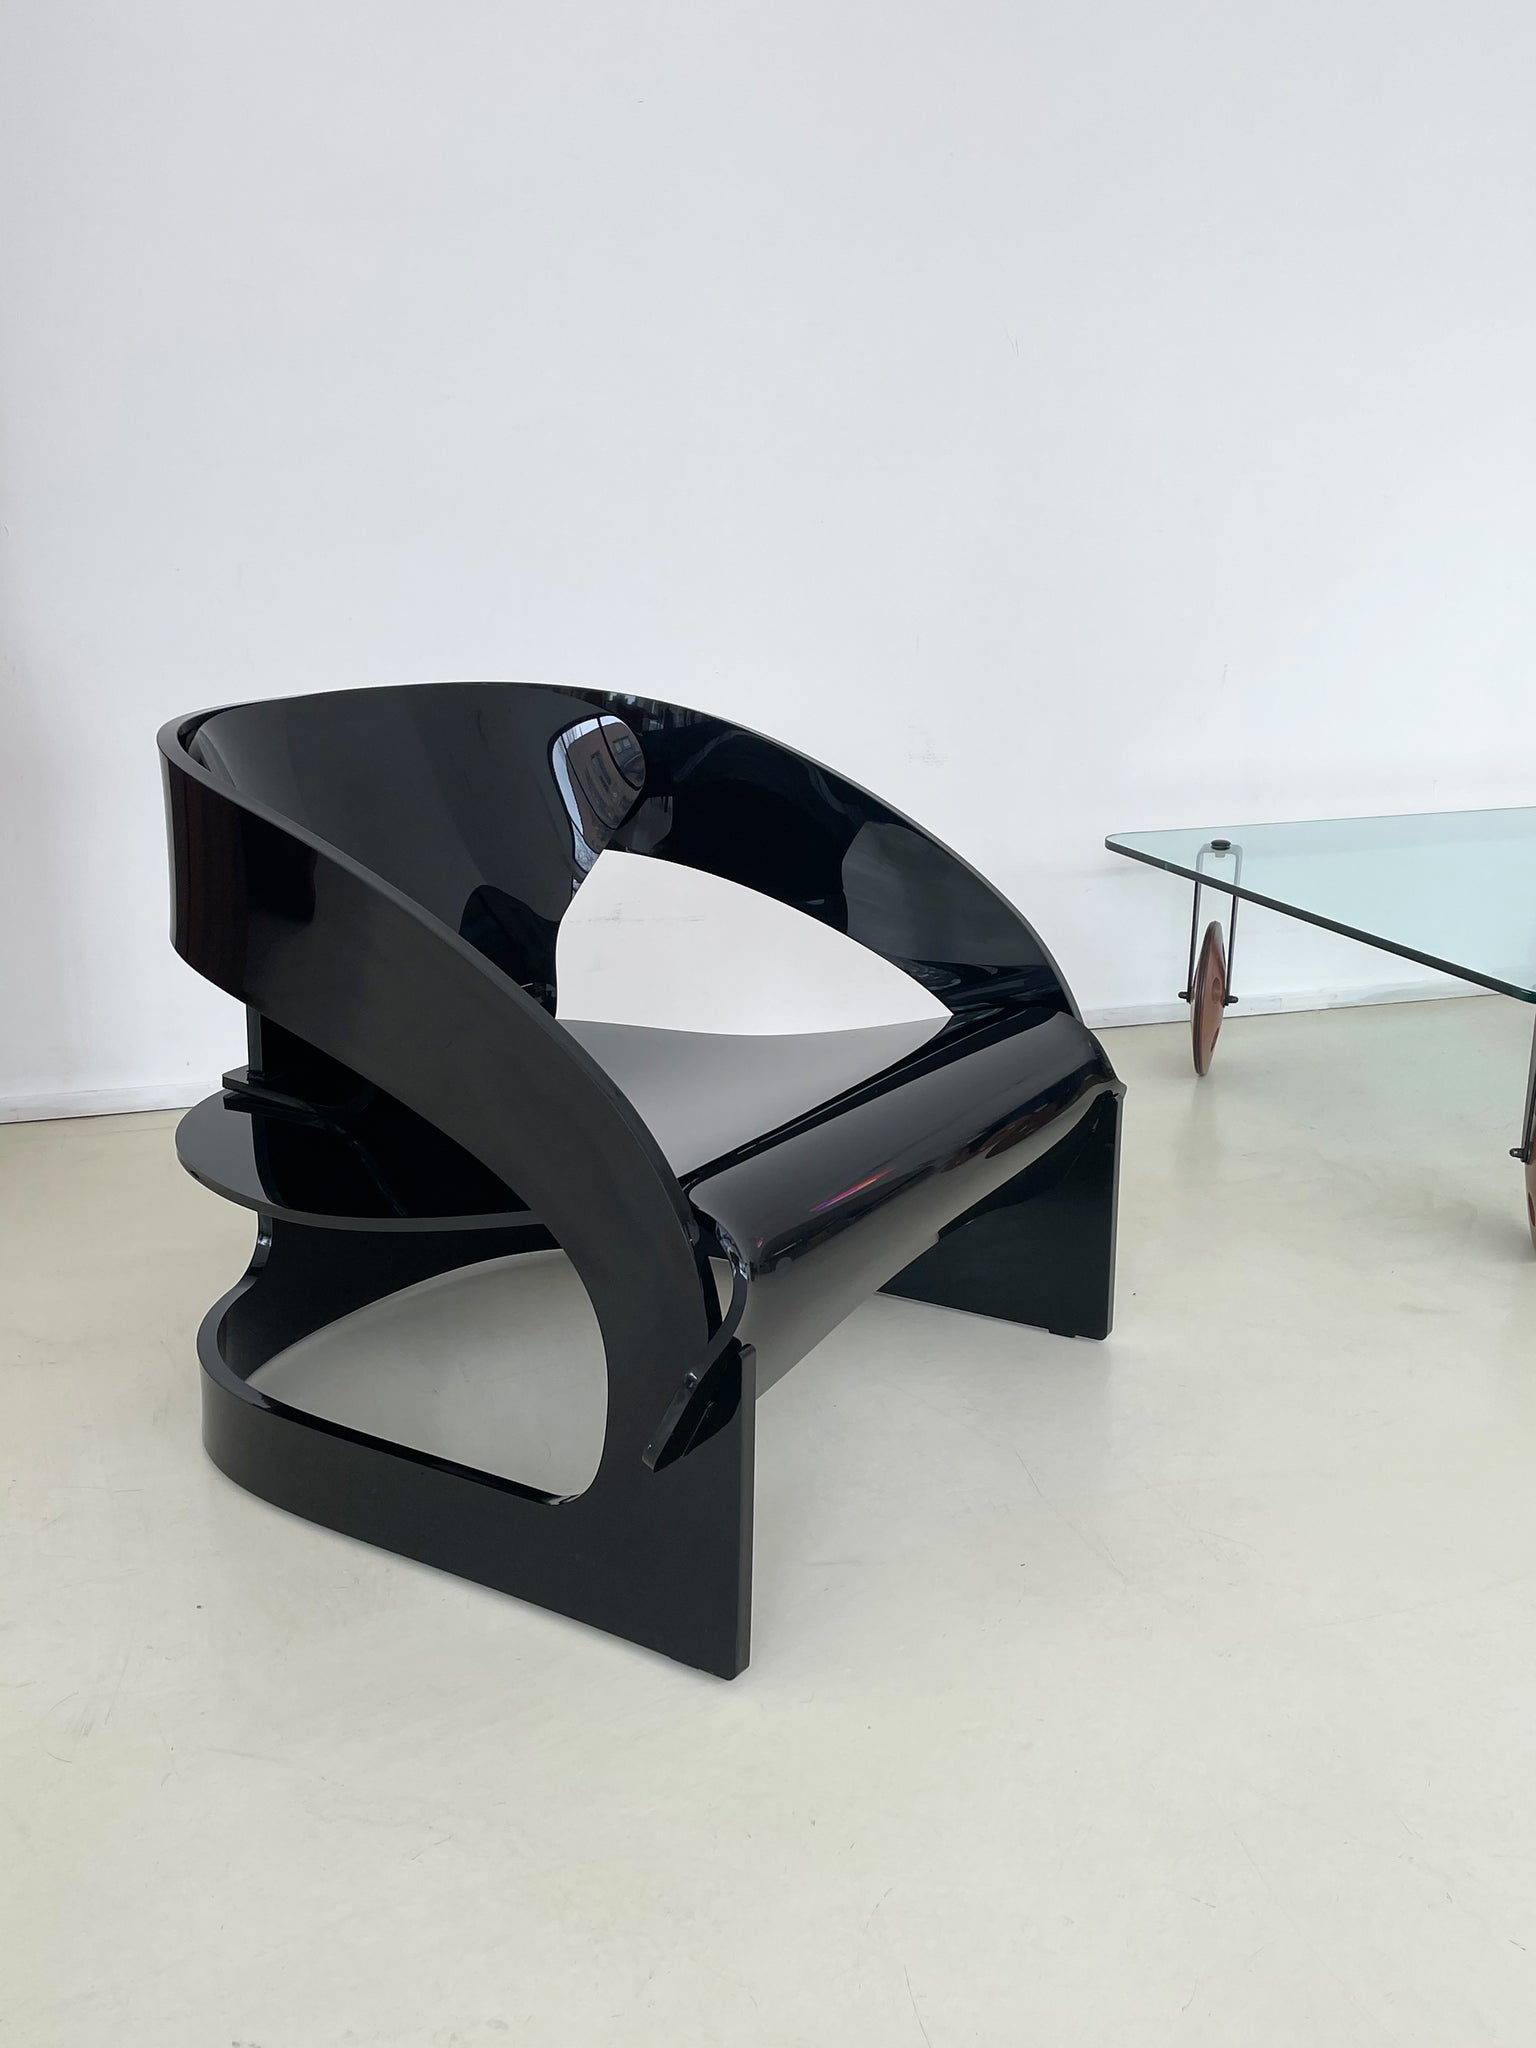 4801 Armchair by Joe Colombo for Kartell